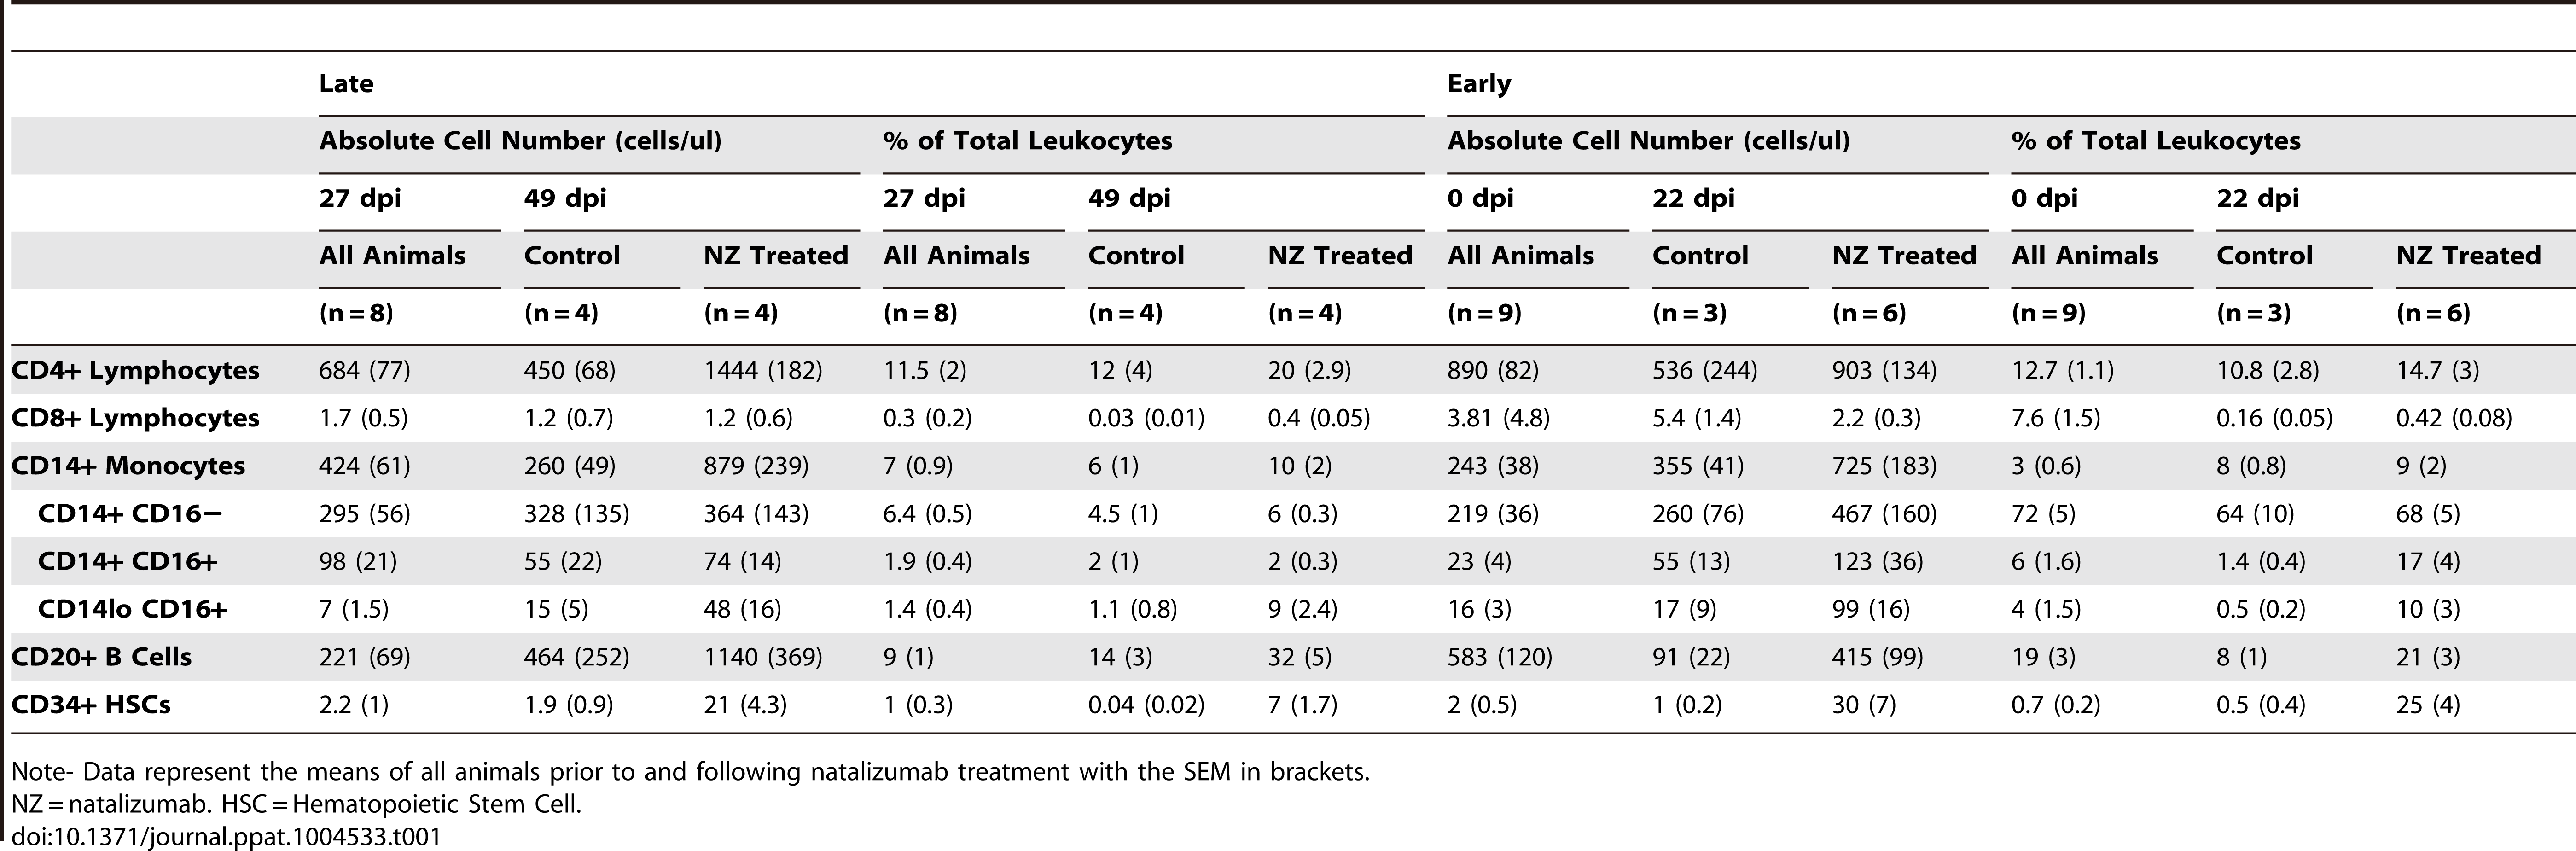 The percentages and absolute cell numbers of lymphocytes, monocytes, B cells, and hematopoietic stem cells in late and early SIV-infected animals.